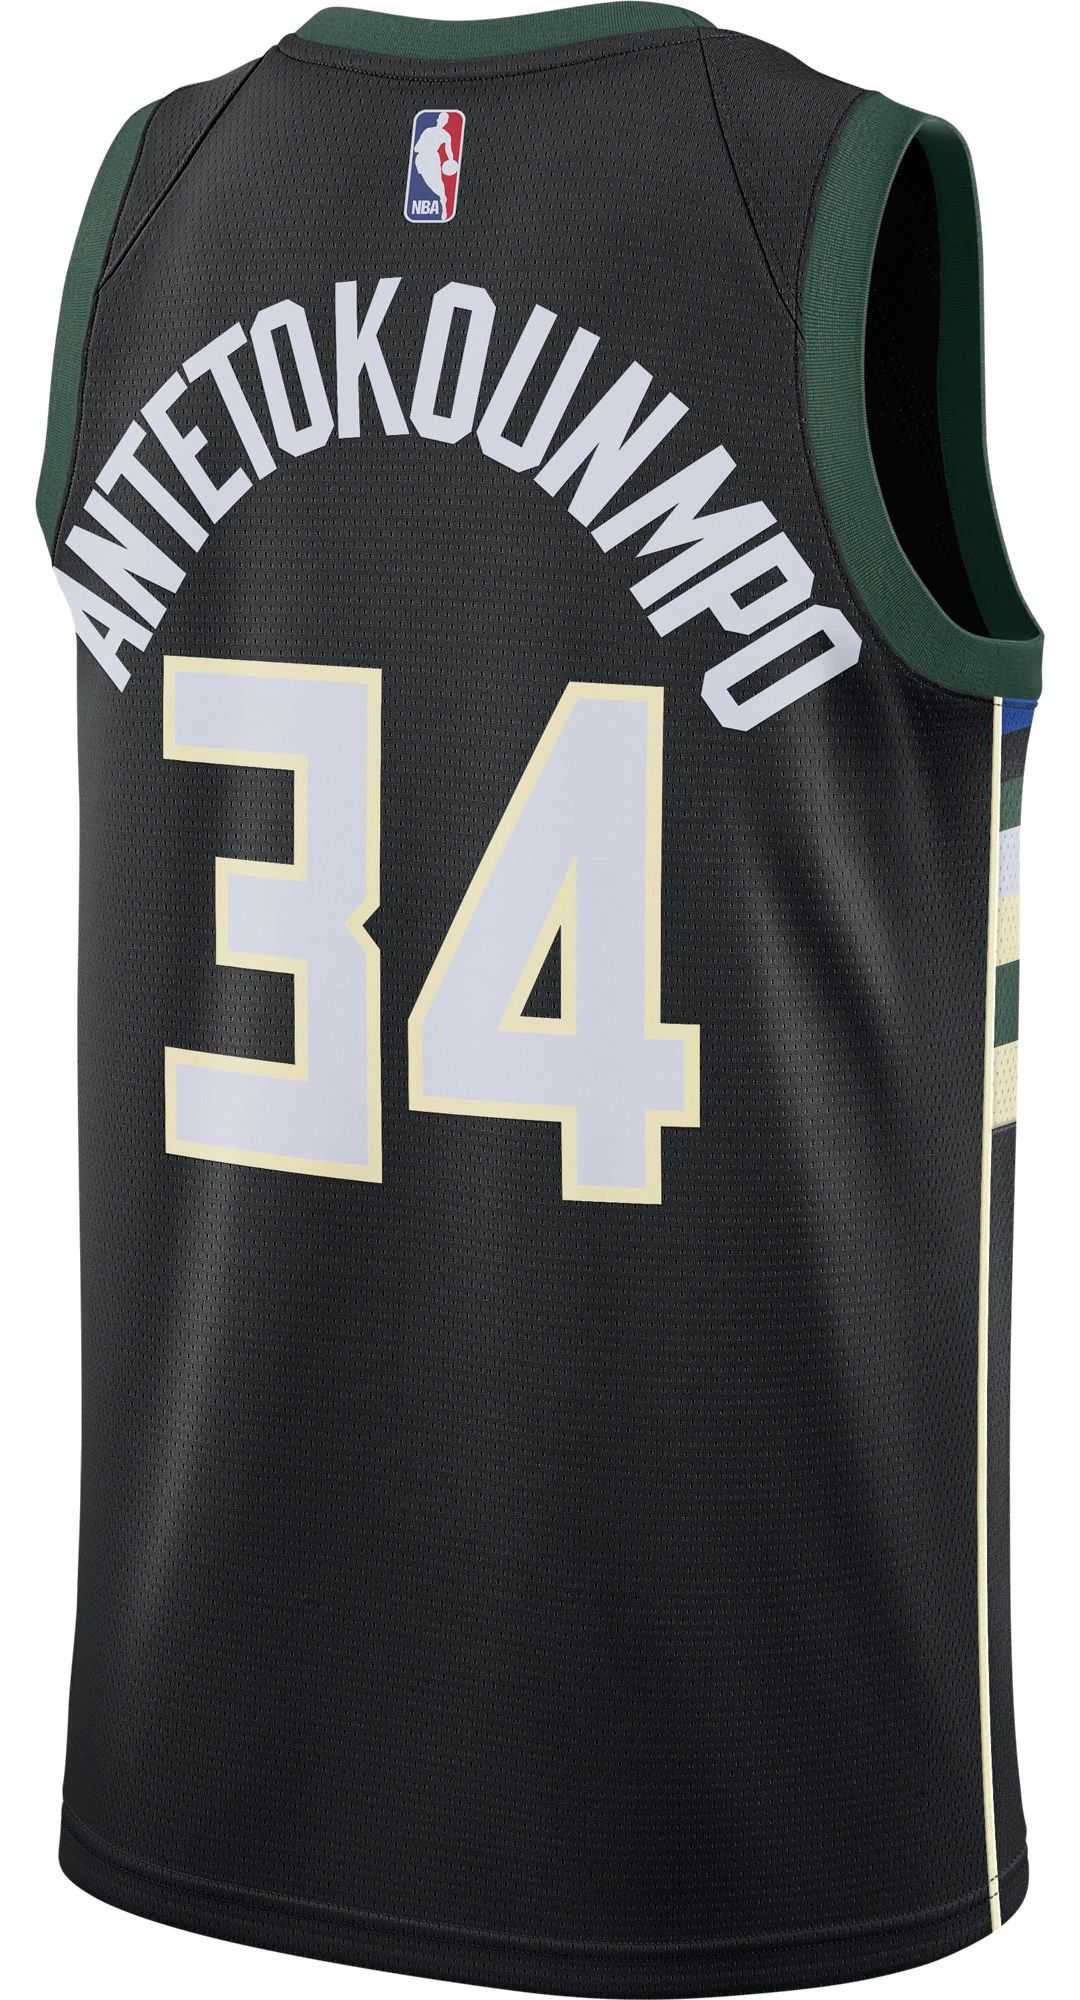 716ade2e5 Nike Men's Milwaukee Bucks Giannis Antetokounmpo #34 Black Dri-FIT ...